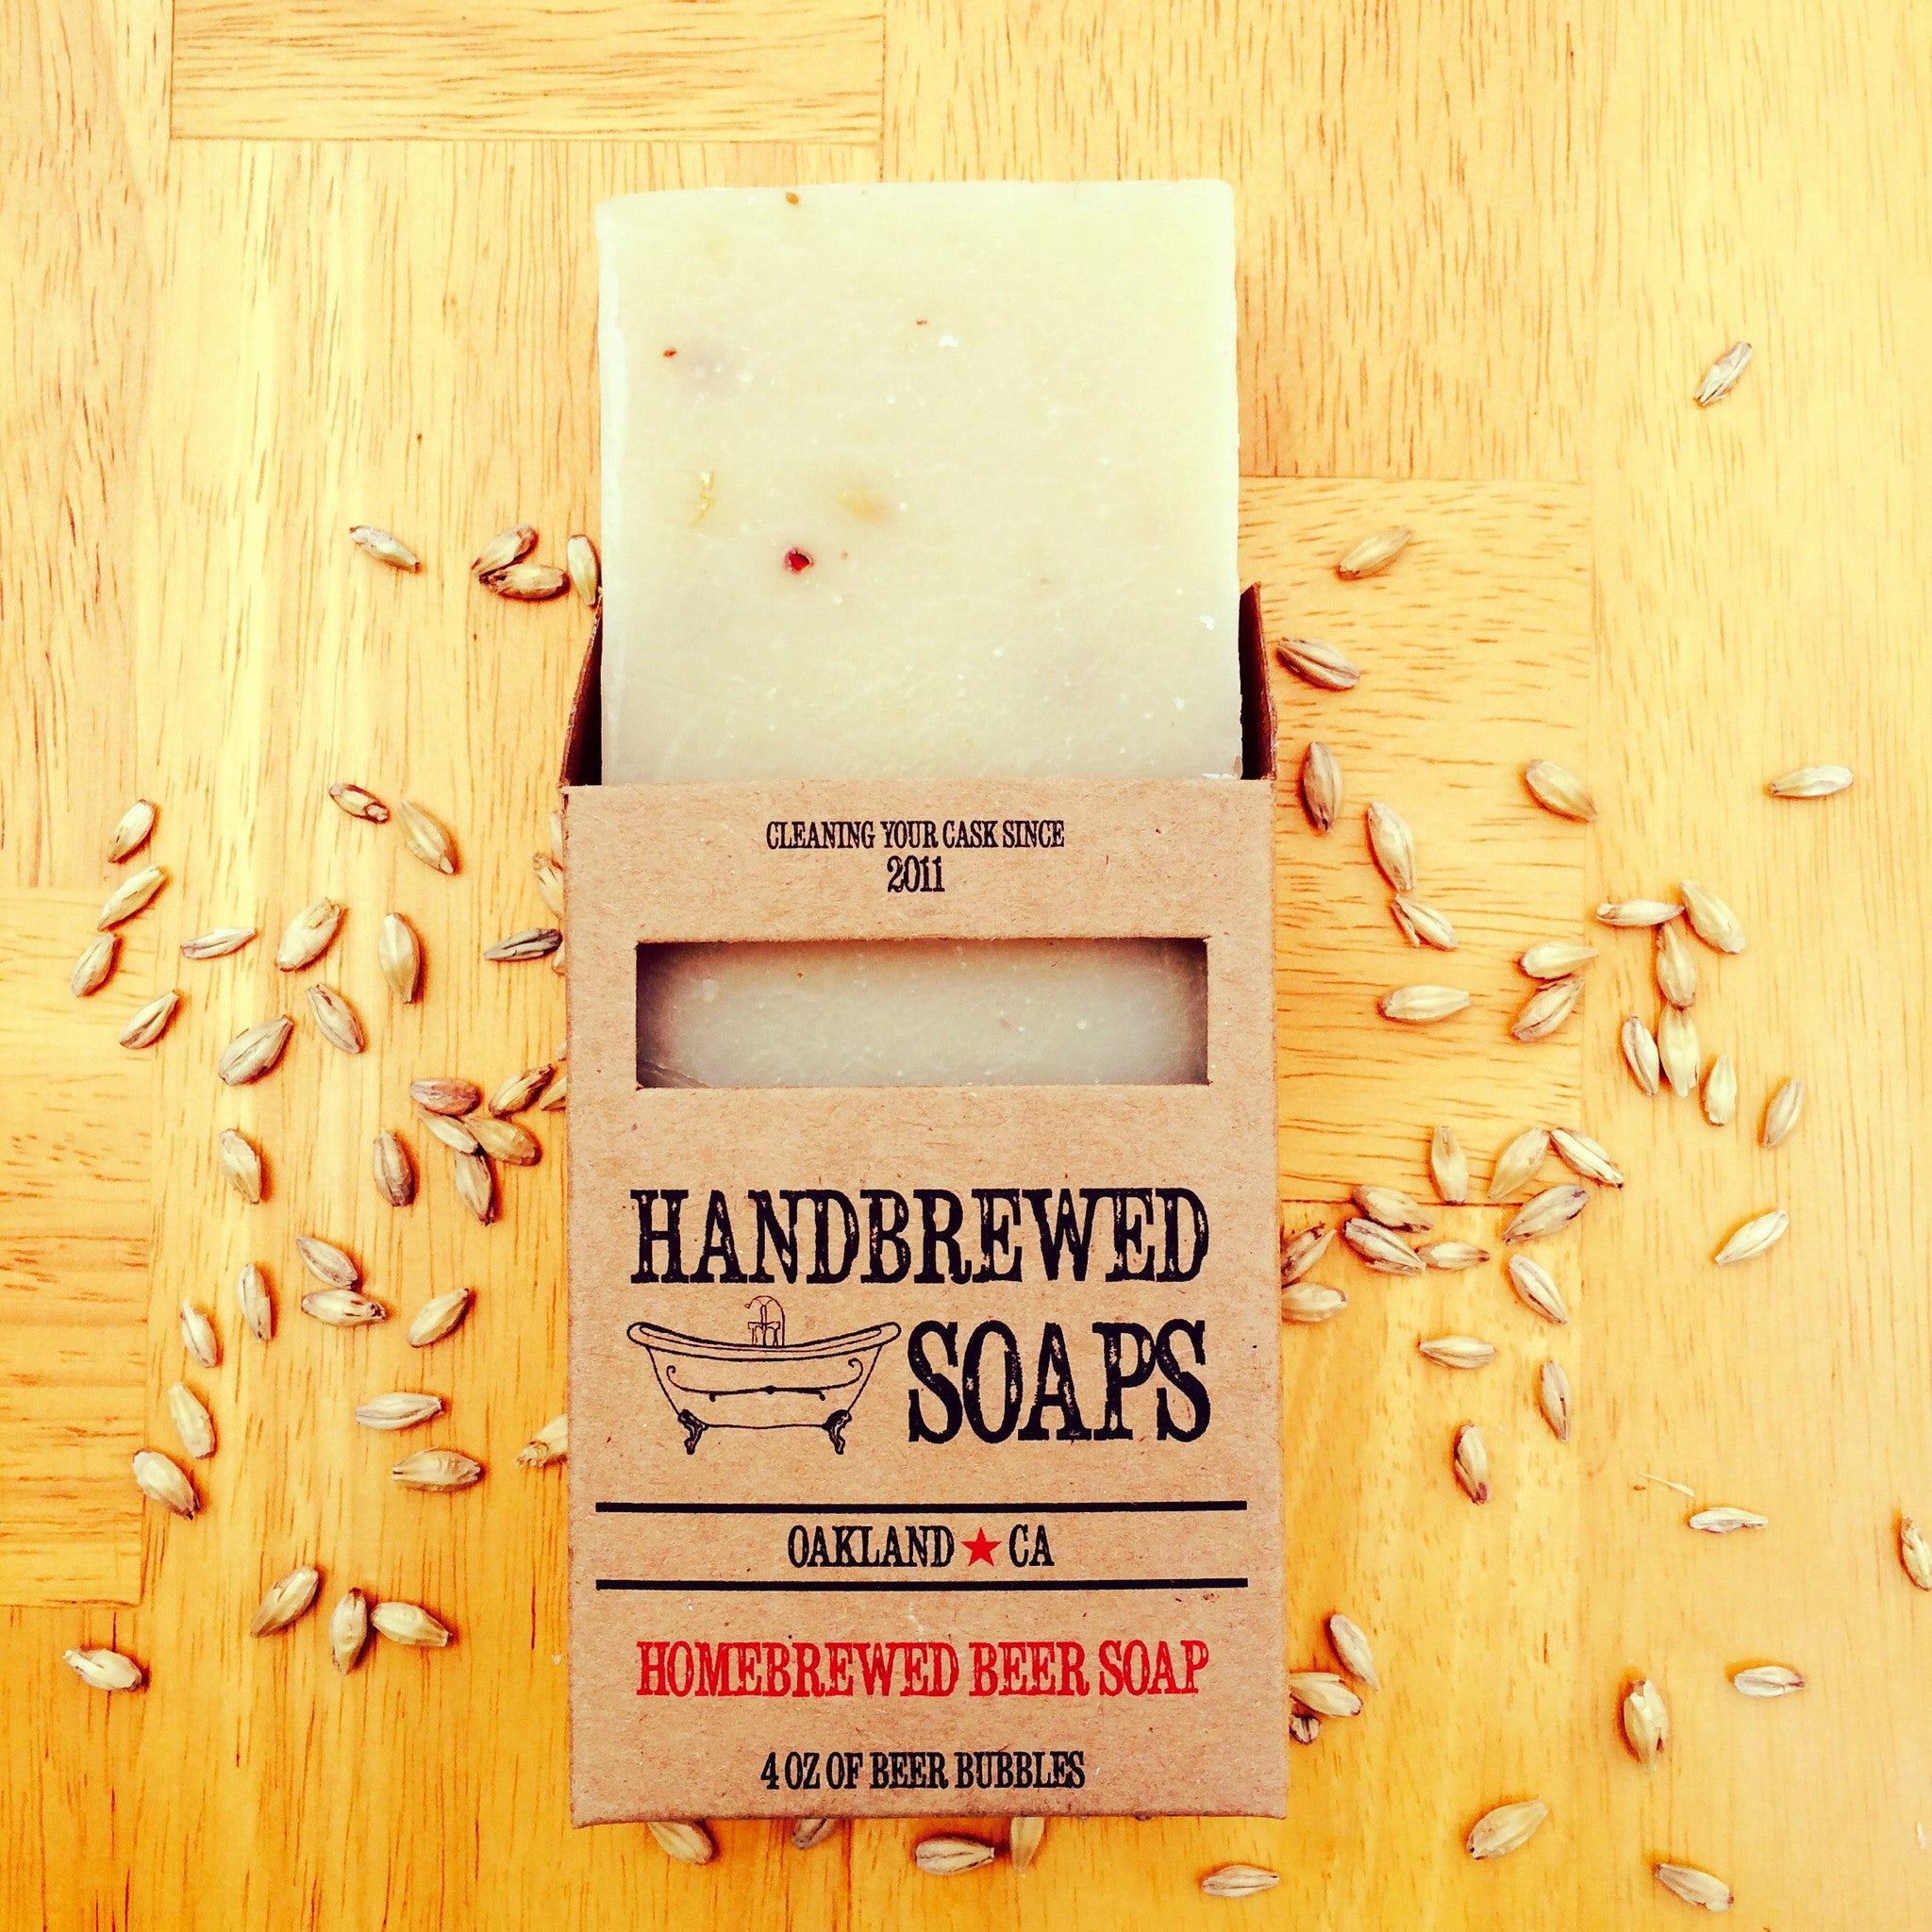 Homebrewed Spiced Ale Beer Soap made with spent grains